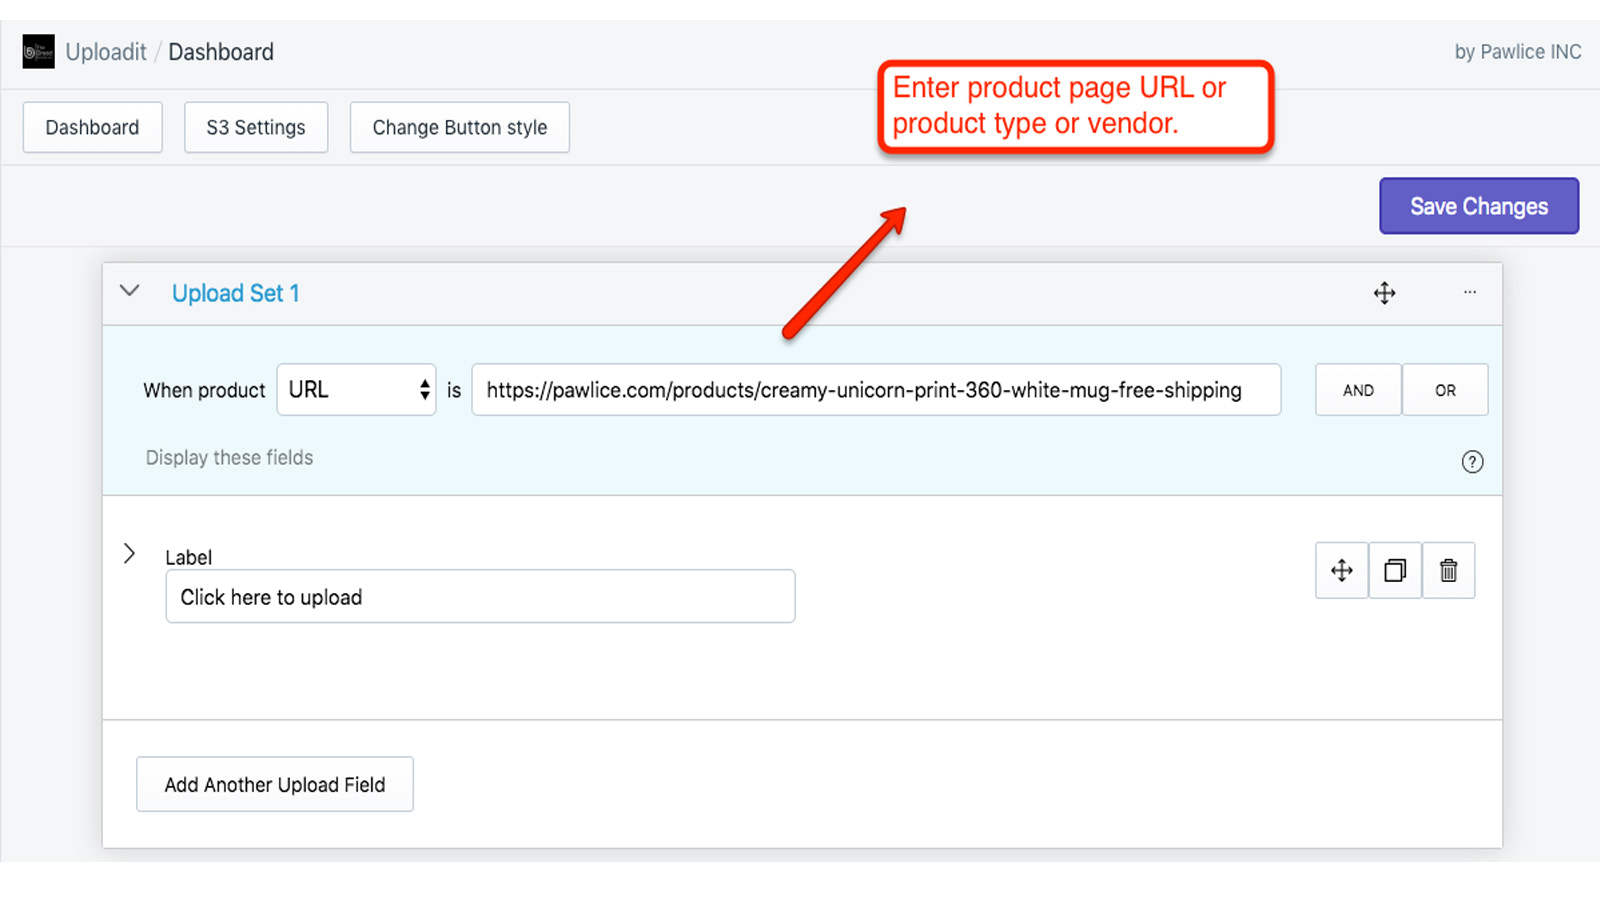 Enter product page URL to show upload button